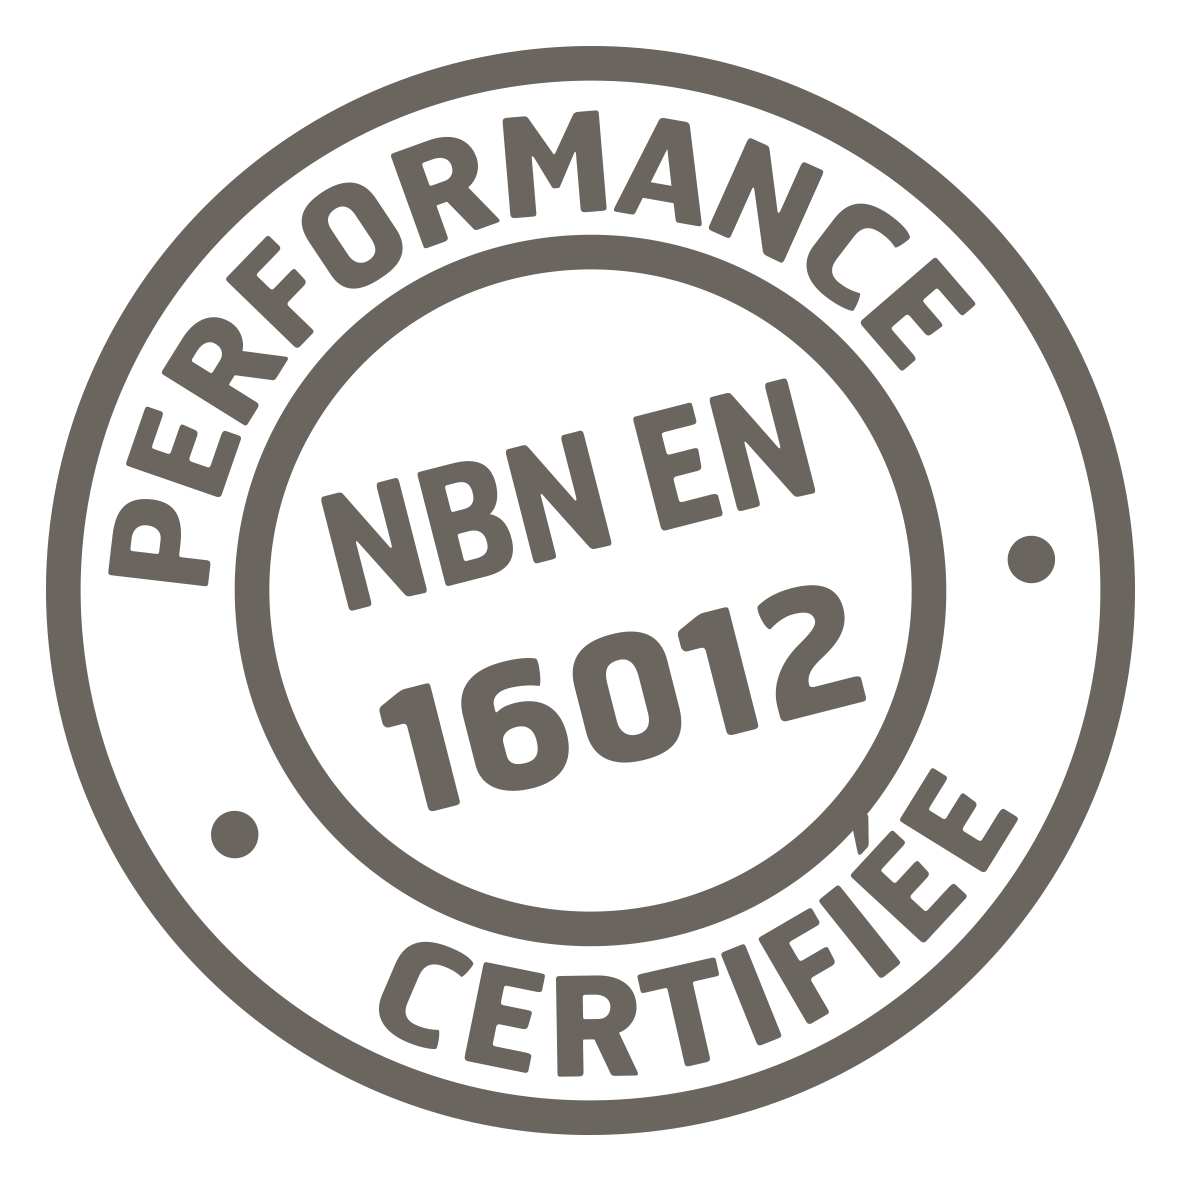 certification nbn en 16012